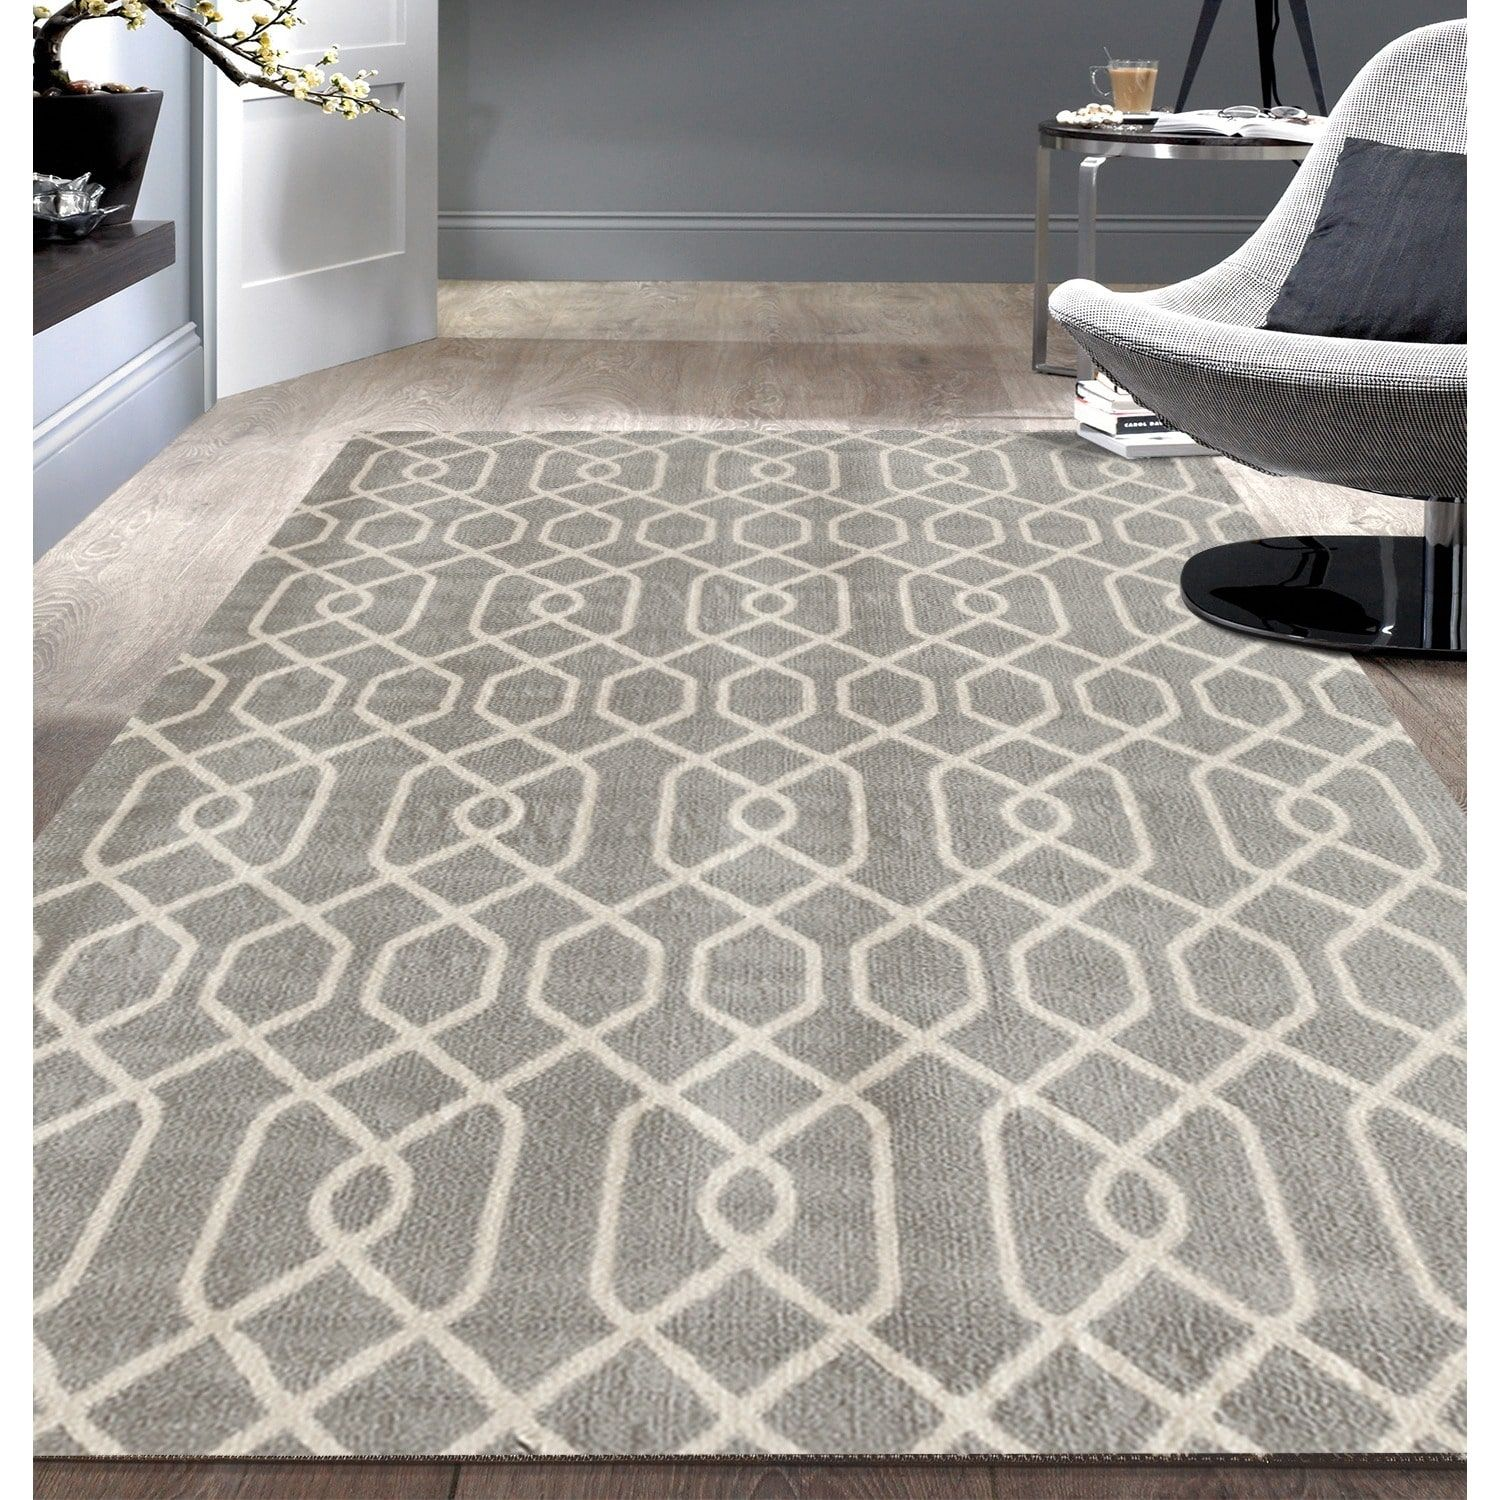 10x14 Rug The Best Color Of West Elm Area Rugs Luxury